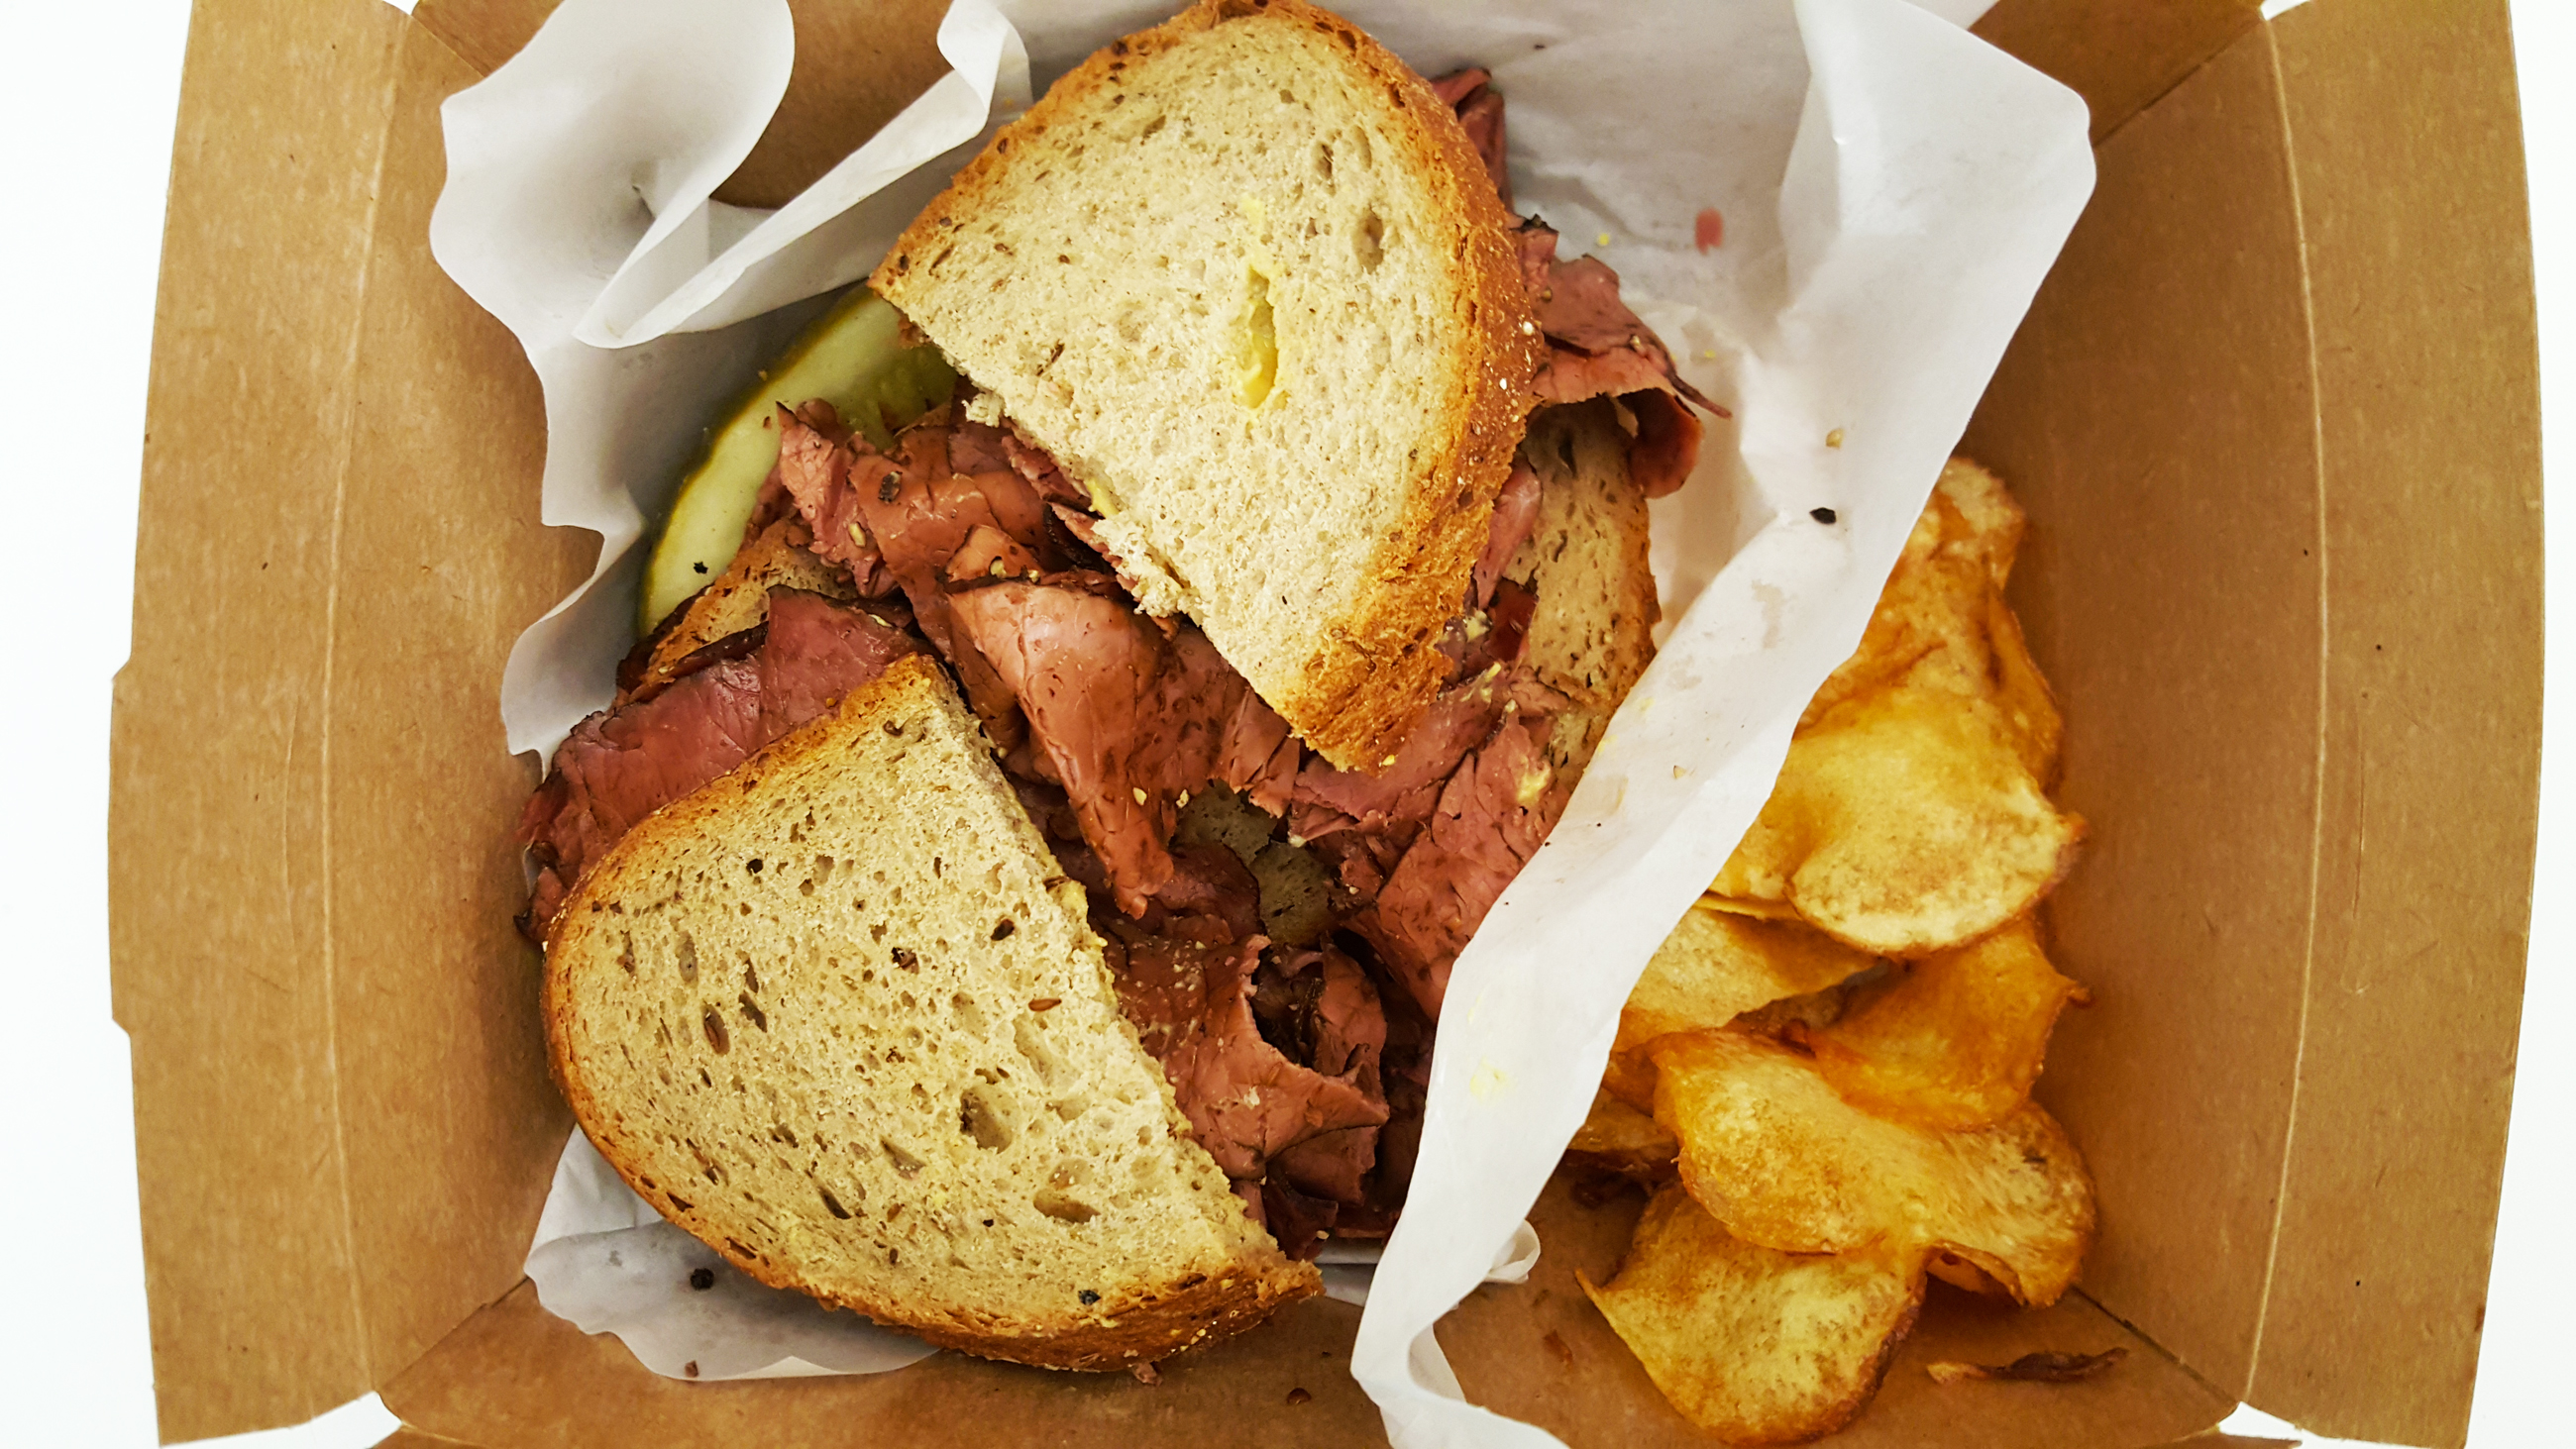 Happy National Hot Pastrami Day (again)